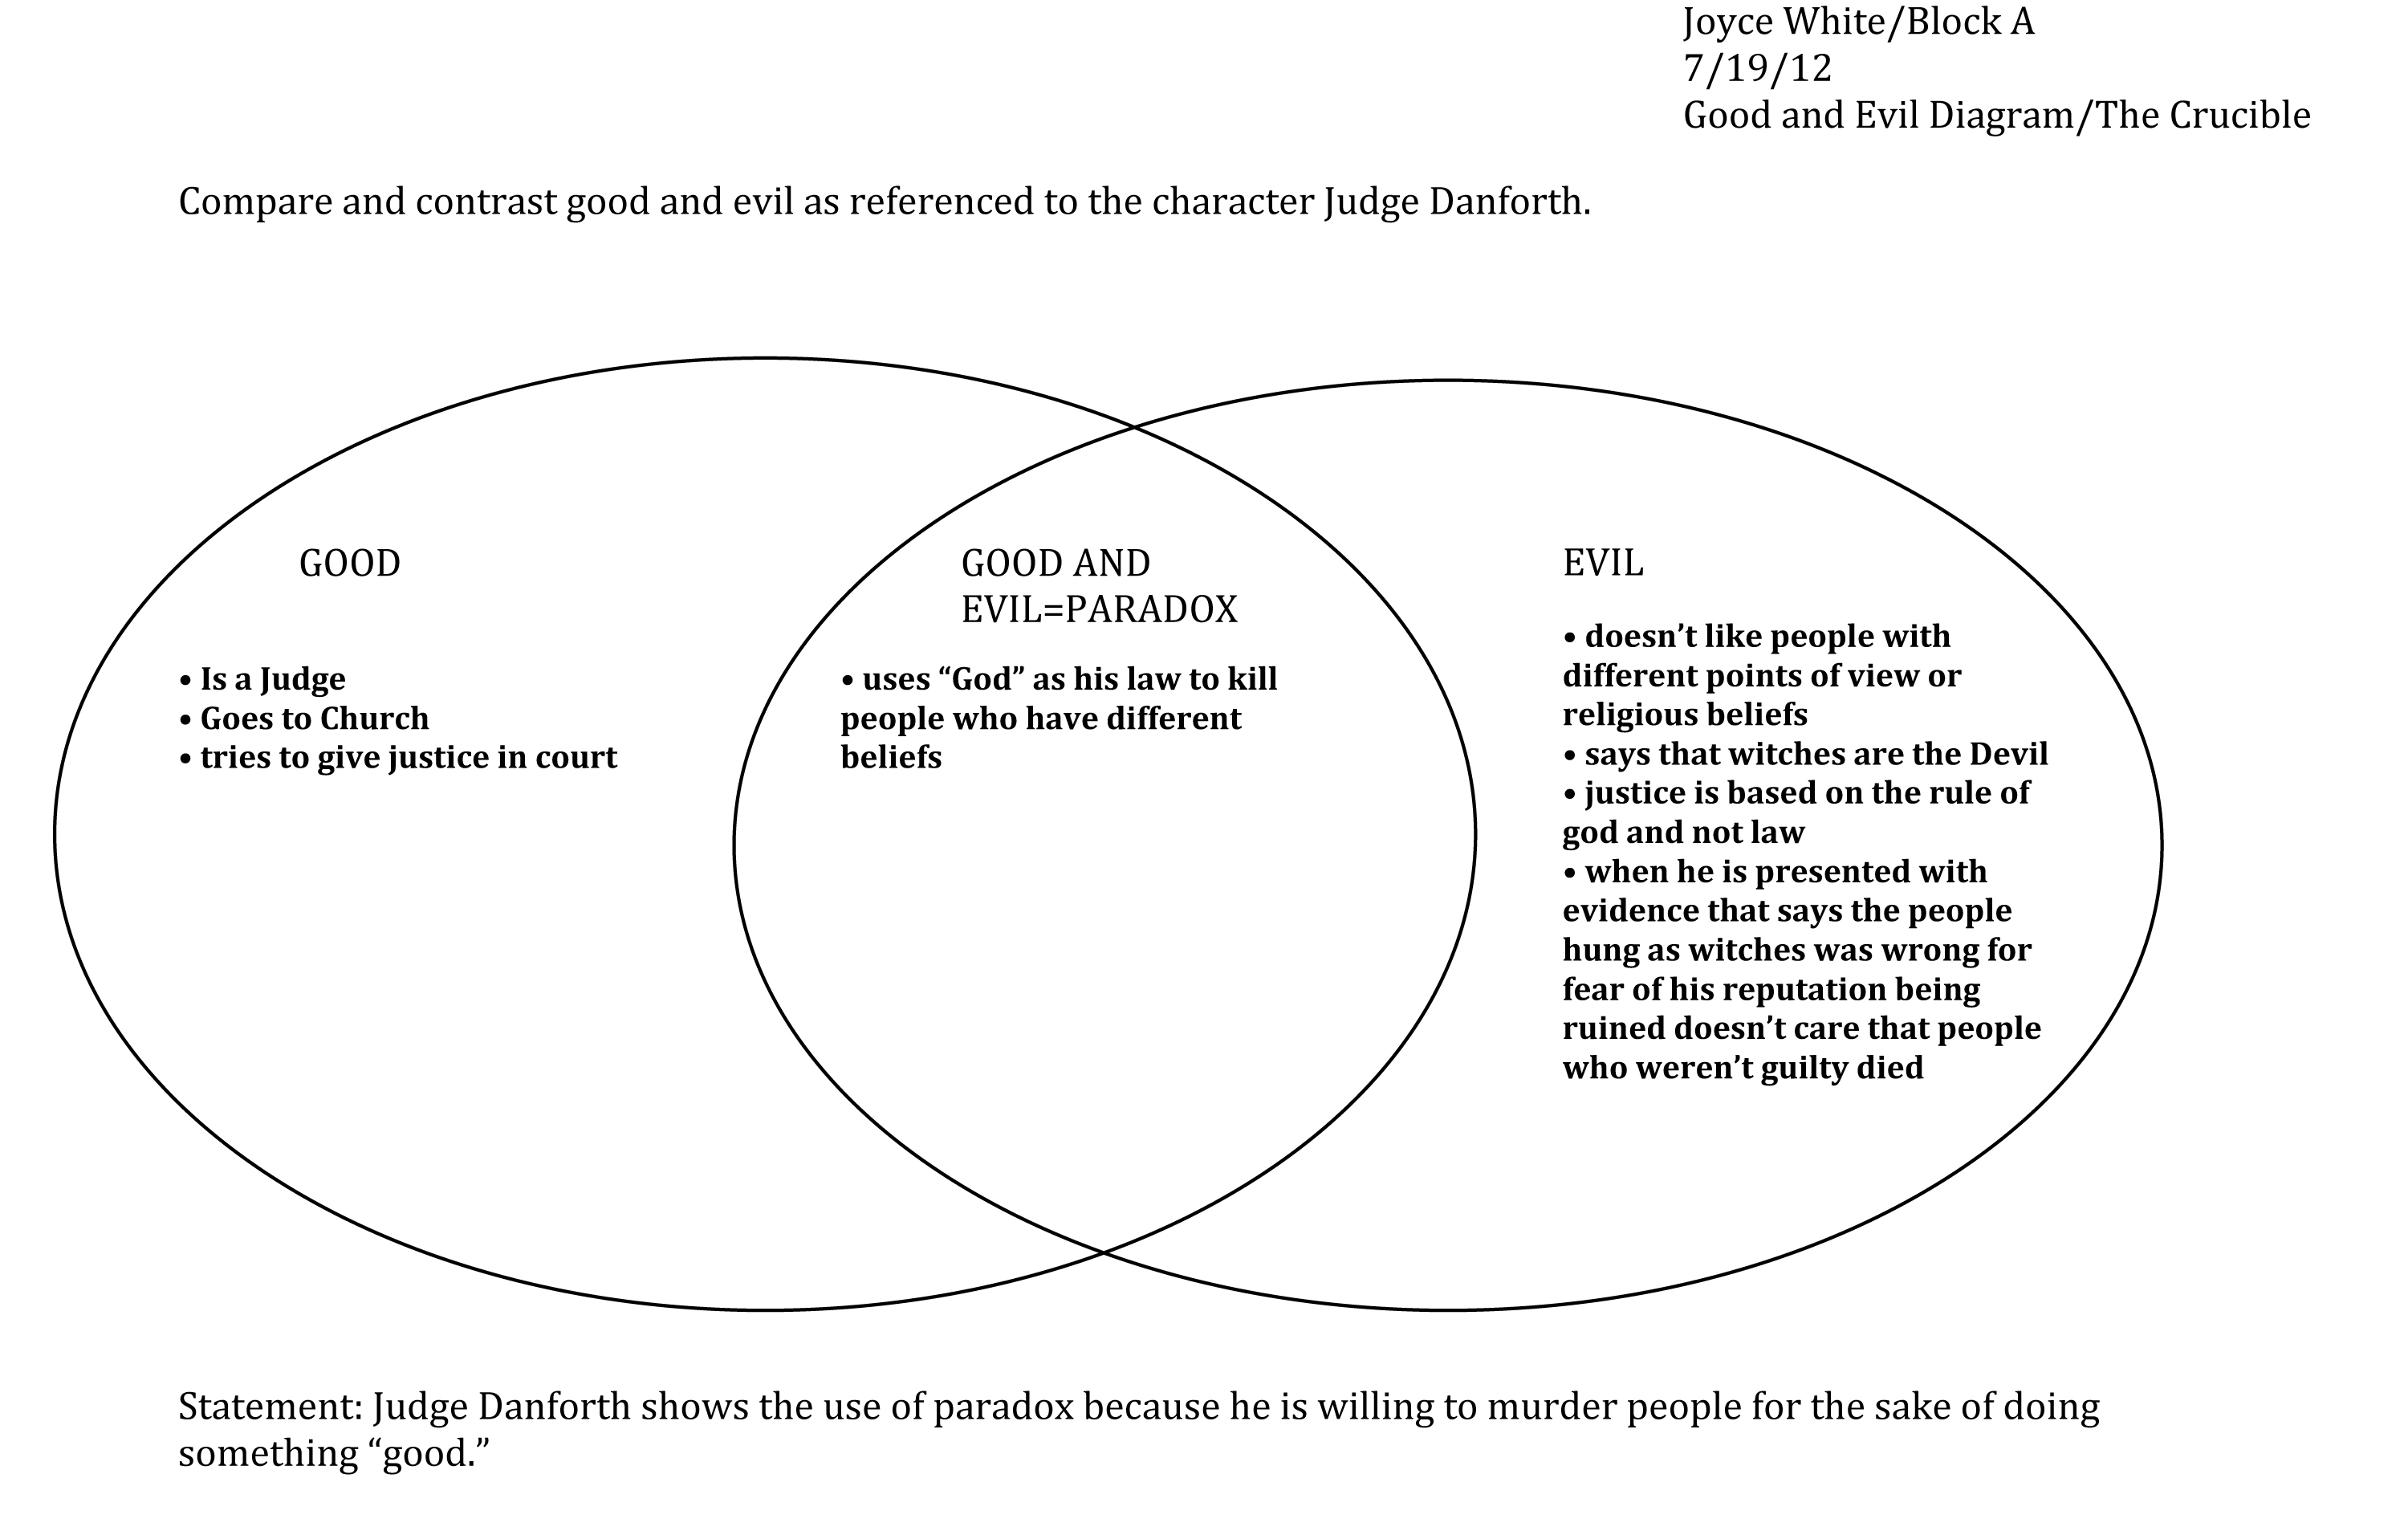 Venn Diagram Sample of the character Judge Danforth